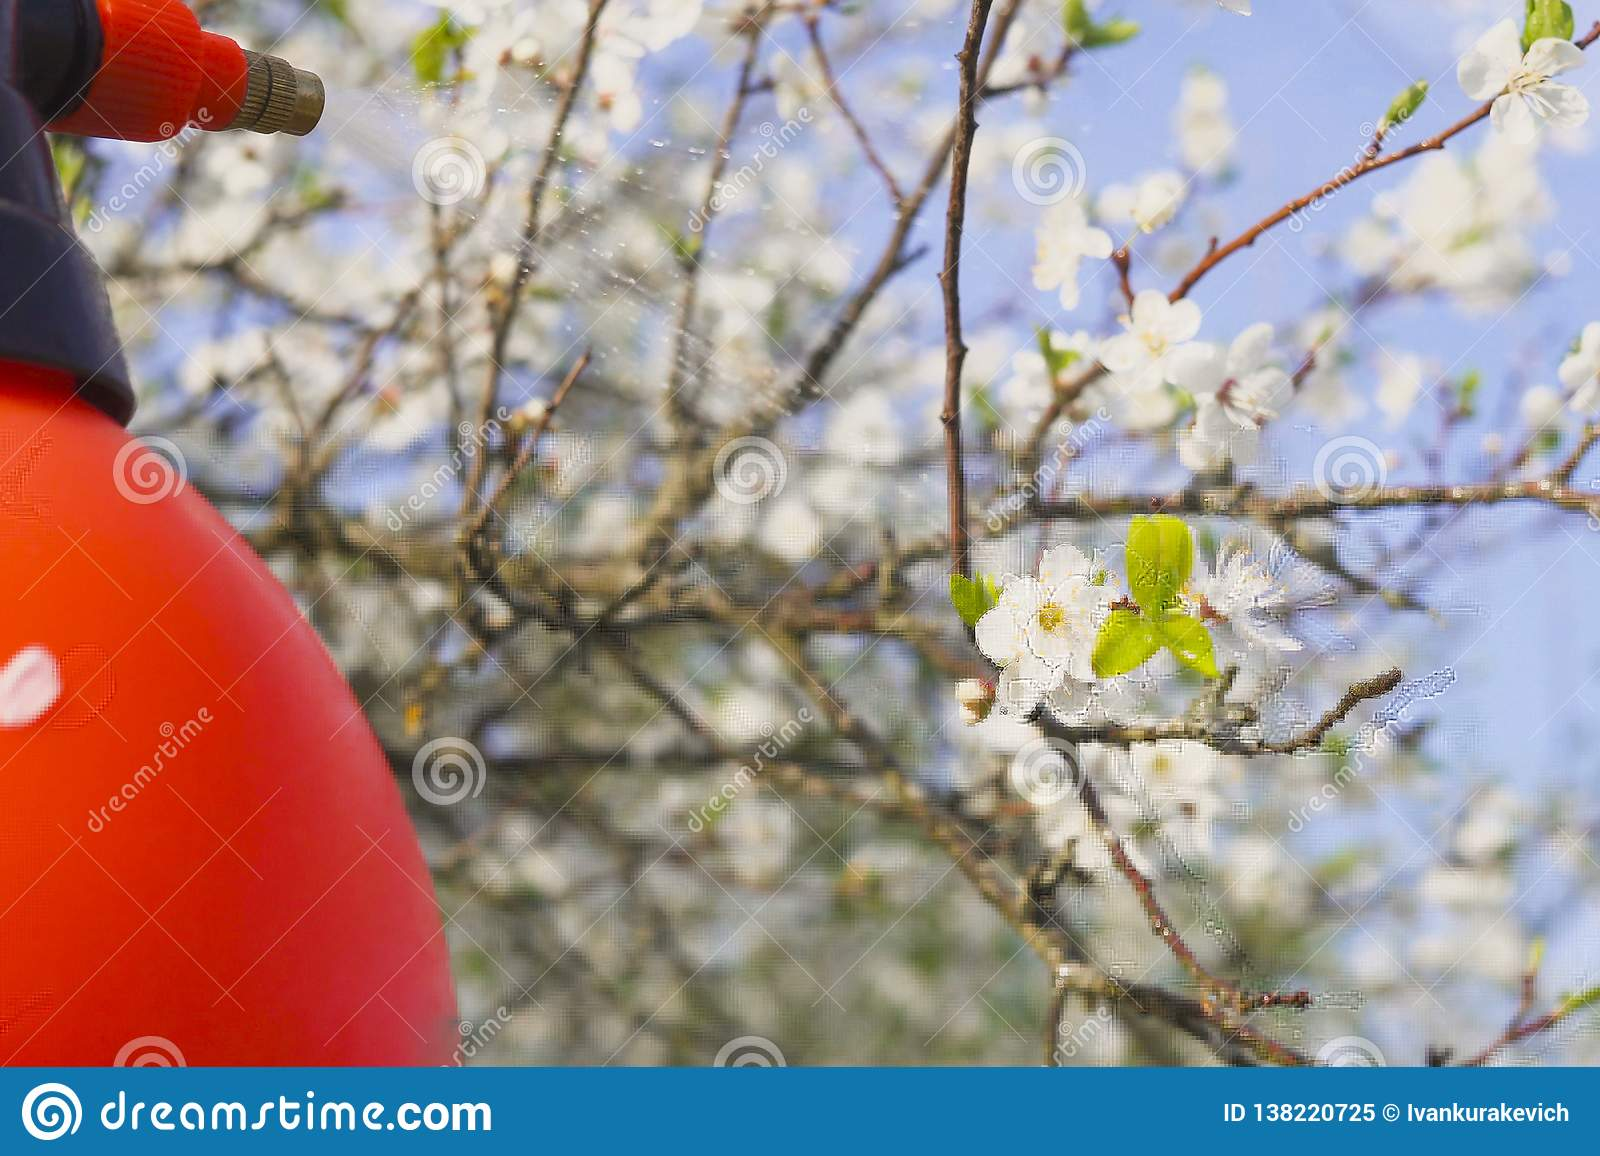 Gardener with spraying a blooming fruit tree against plant diseases and pests. Use hand sprayer with pesticides in the